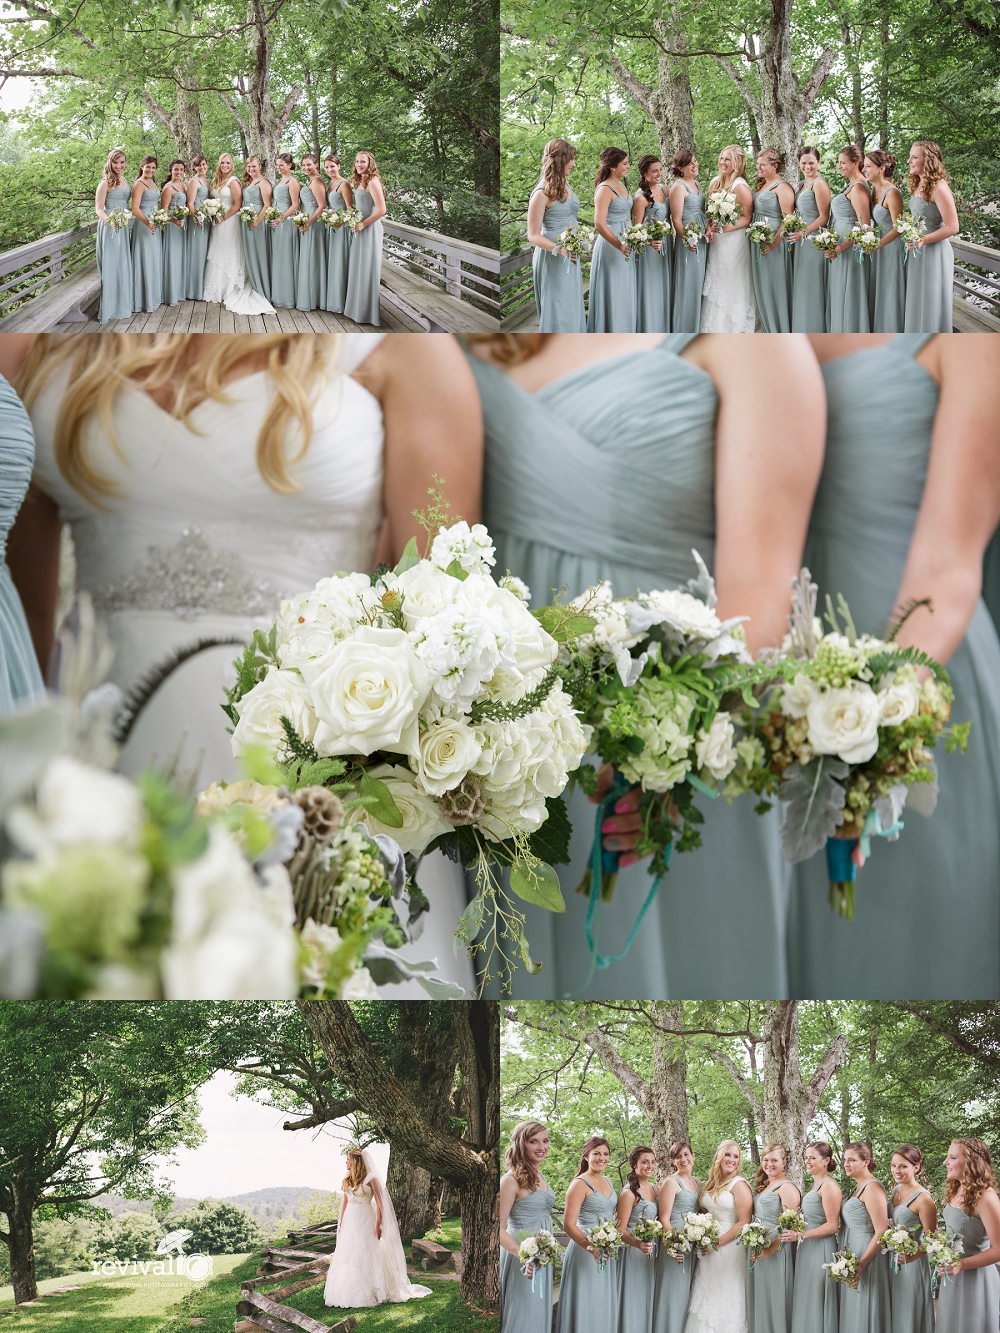 """I Spy Something Green"" - Inspiration for your Wedding Day by Revival Photography www.revivalphotography.com"